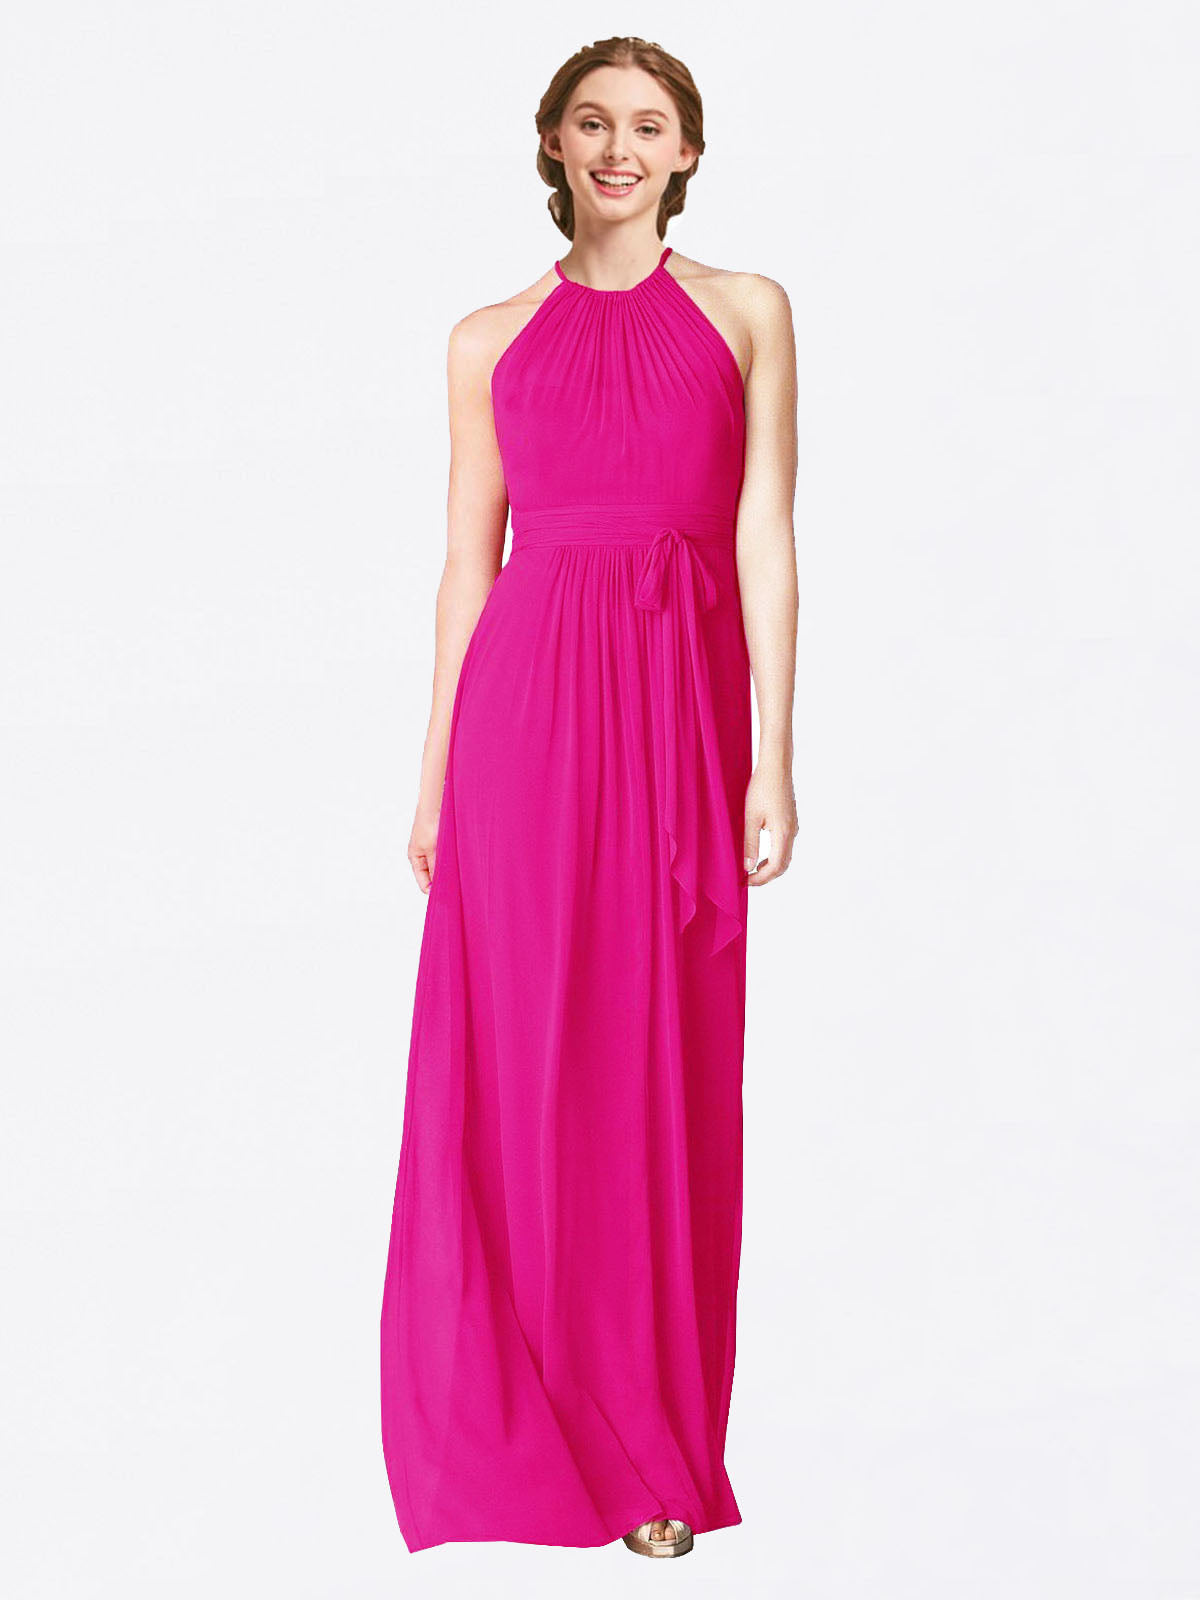 Long A-Line Halter Sleeveless Fuchsia Chiffon Bridesmaid Dress Laura